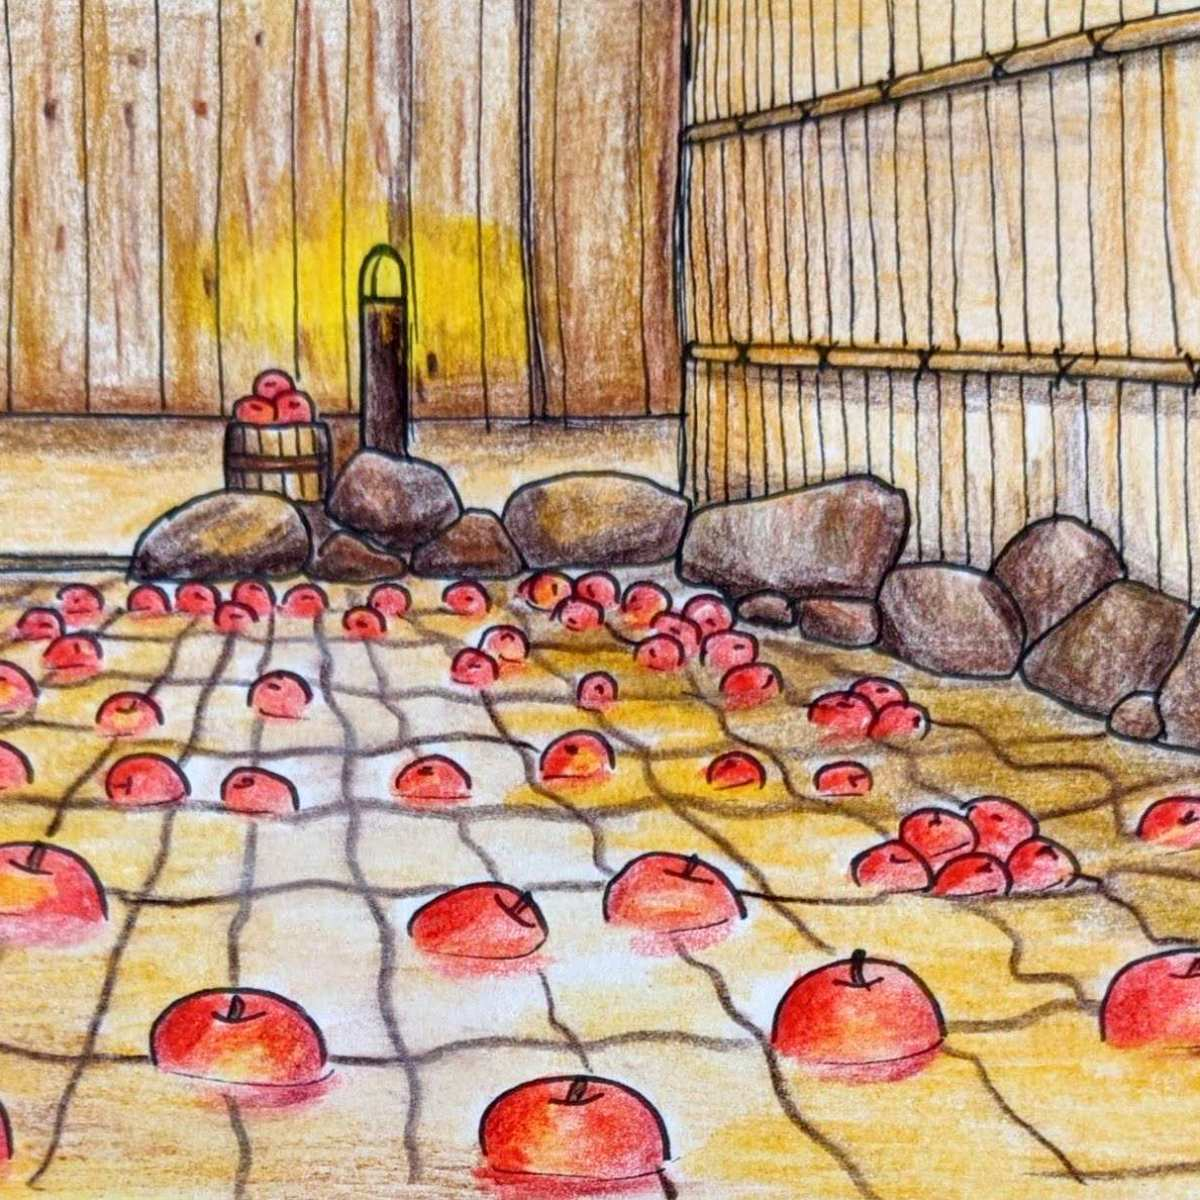 Drawing of a Japanese onsen with apples floating in the water